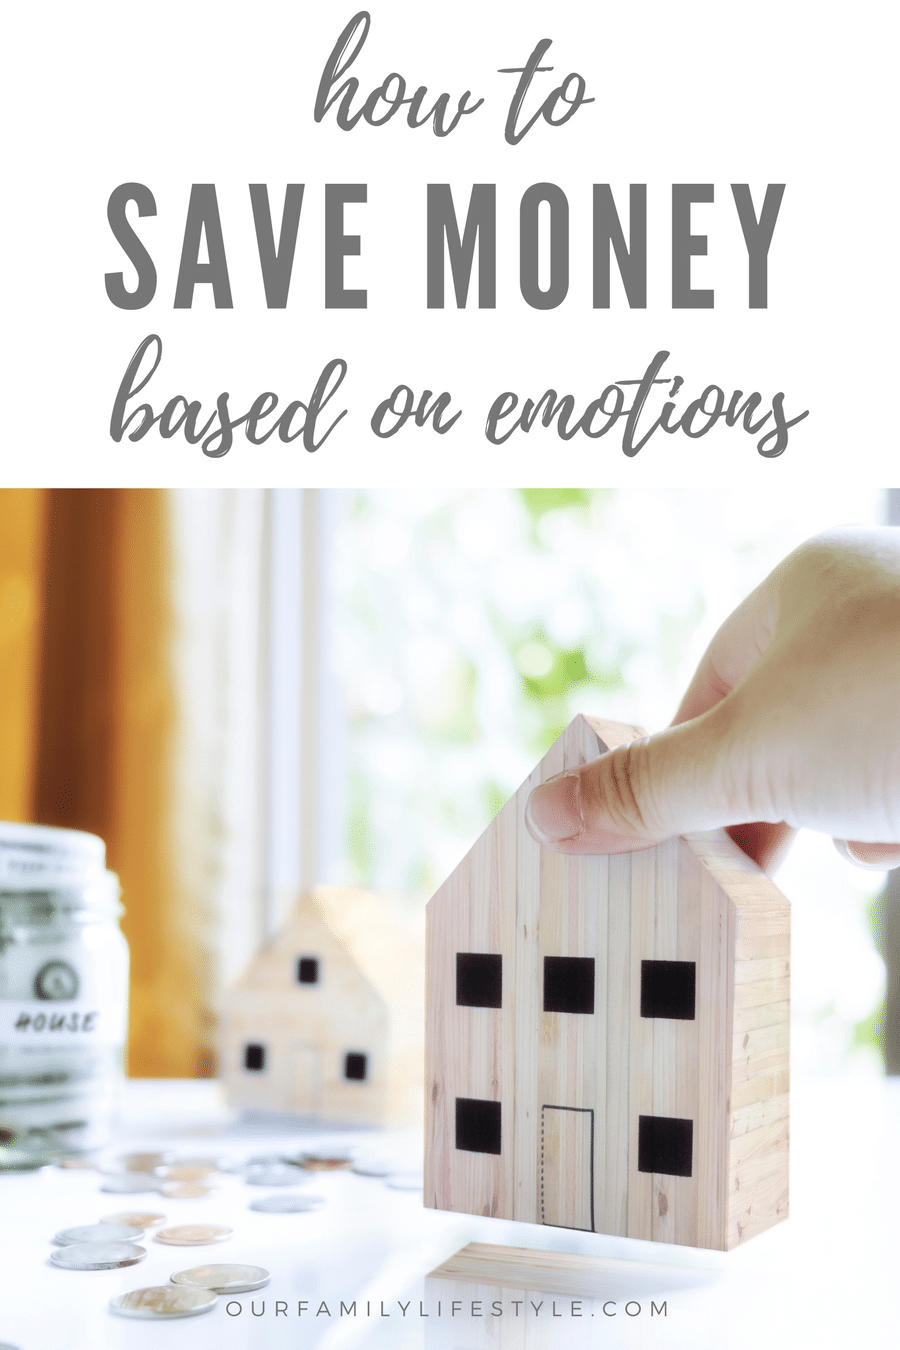 how to save money based on emotions